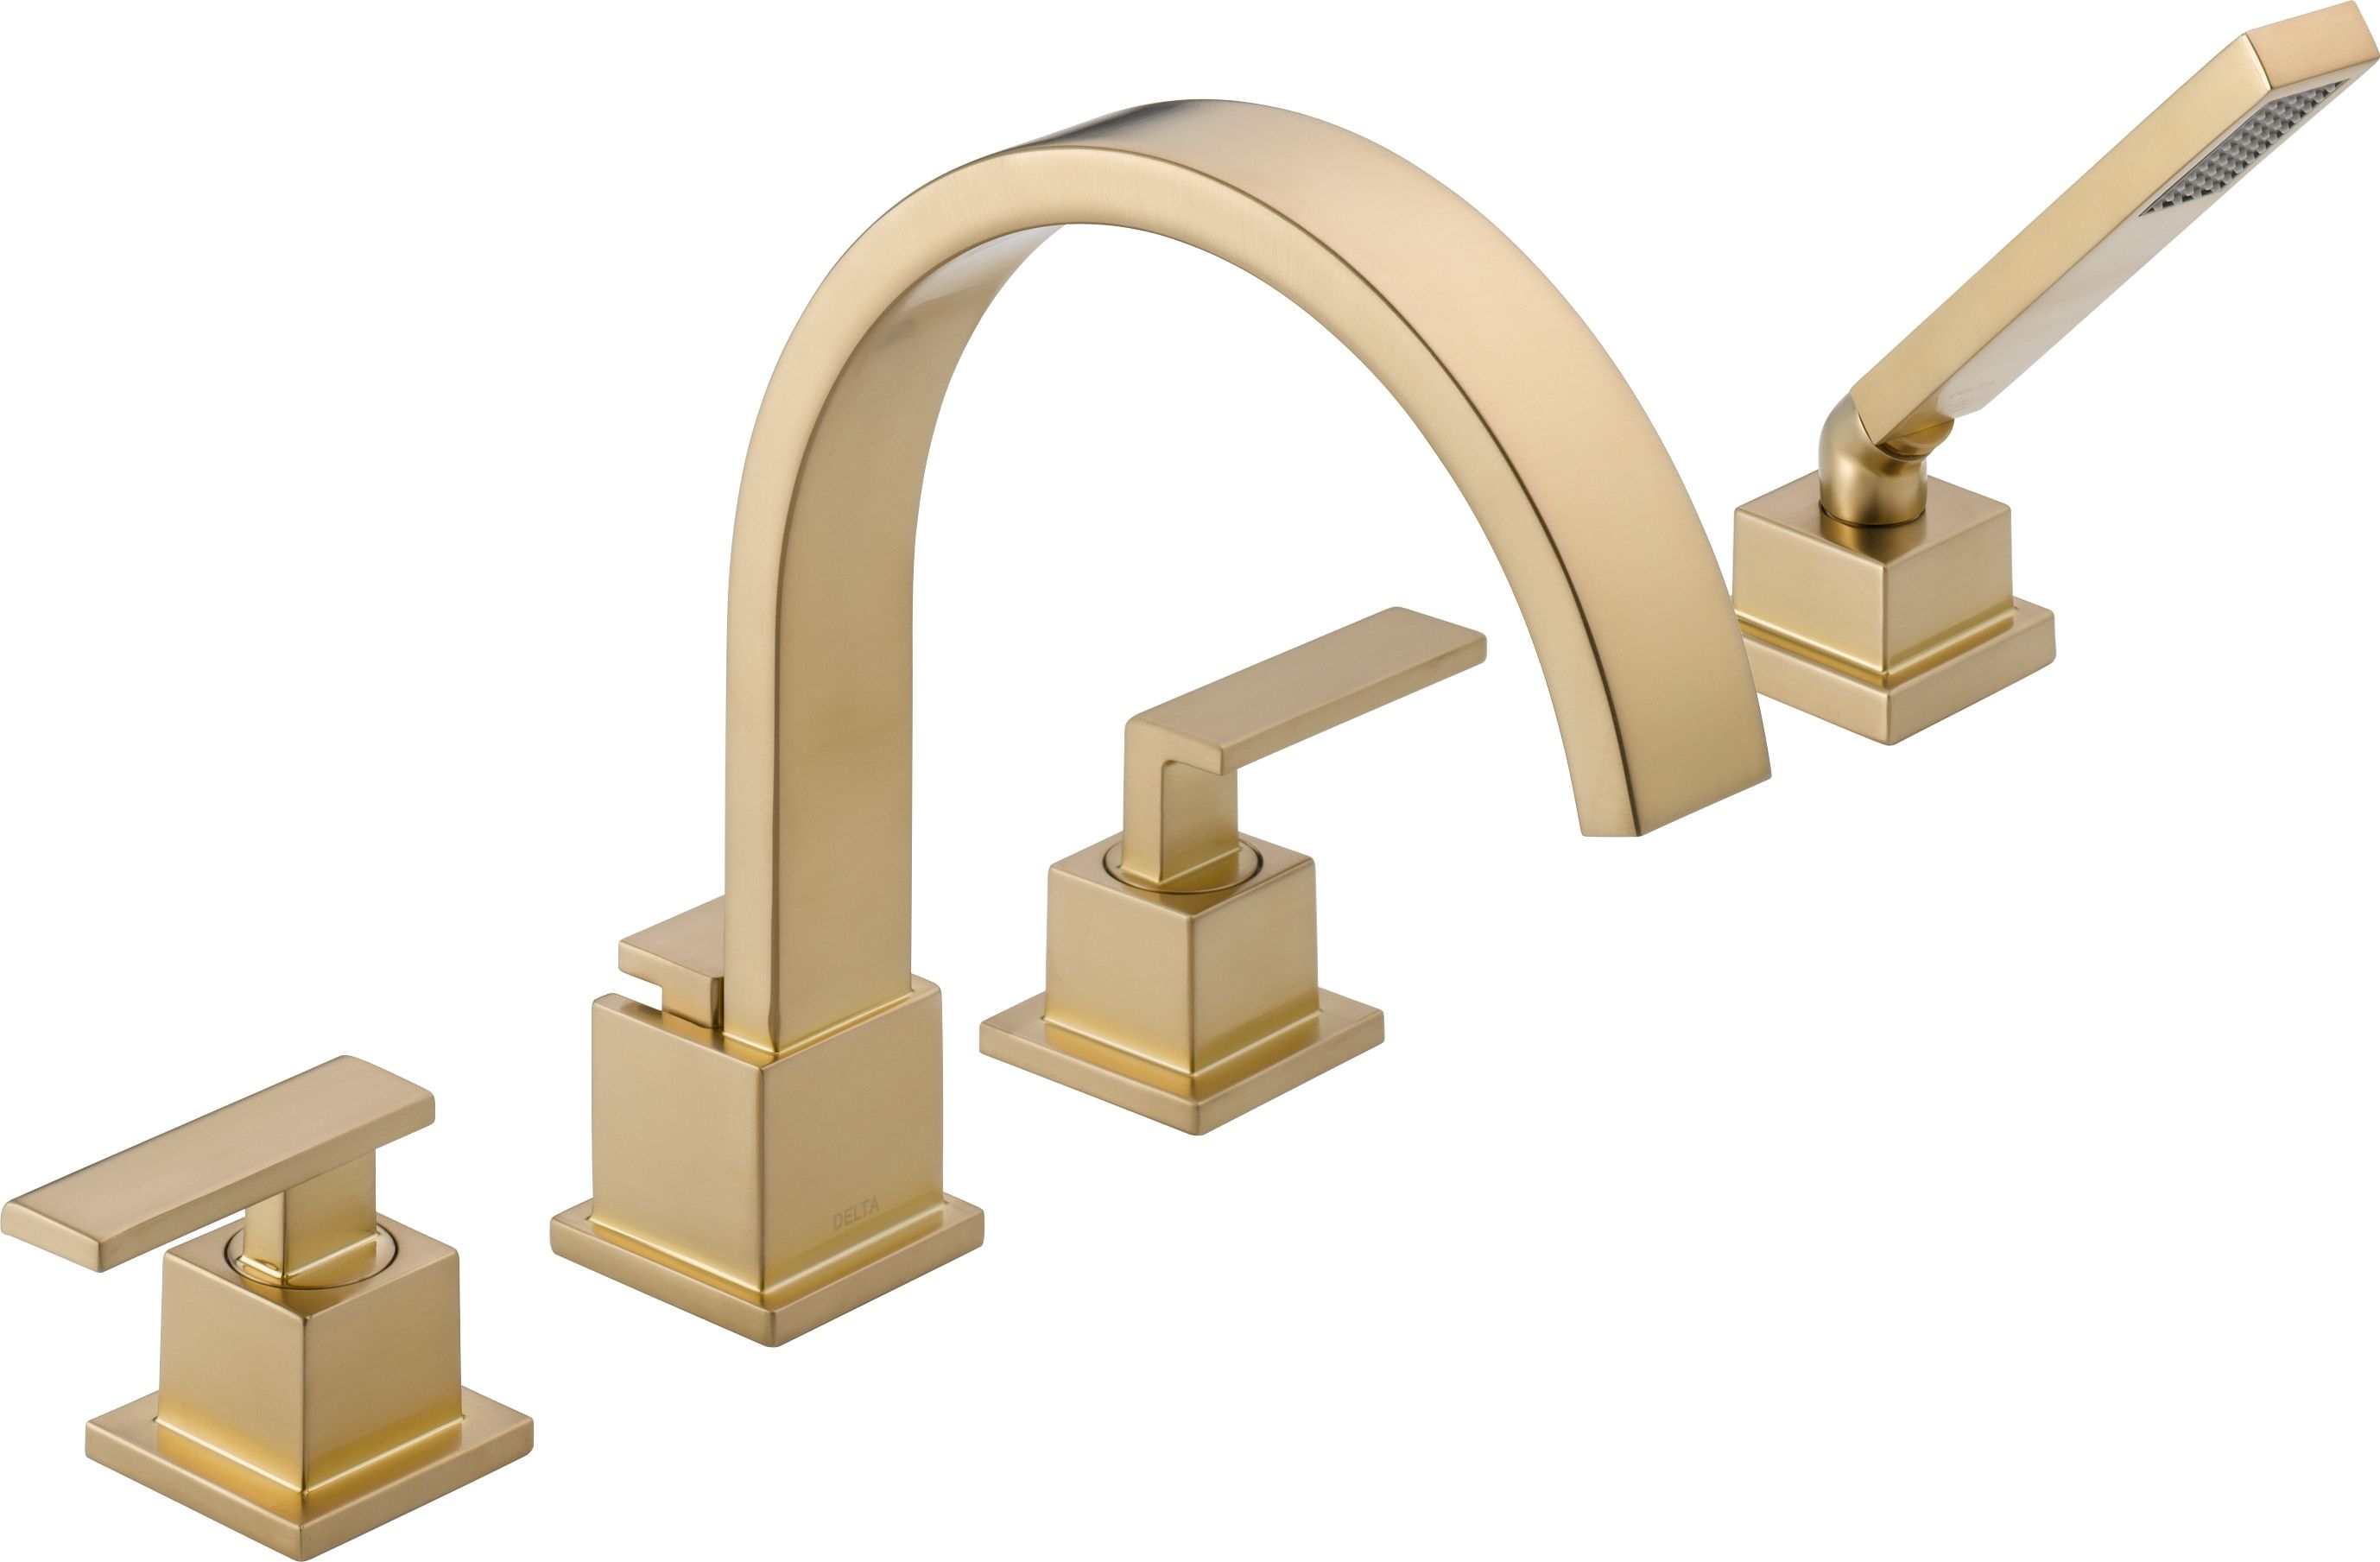 delta stunning moen bathroom sinks lowes parts aquasource or down faucets ideas copper kitchen replacement decoration pull decorating faucet for